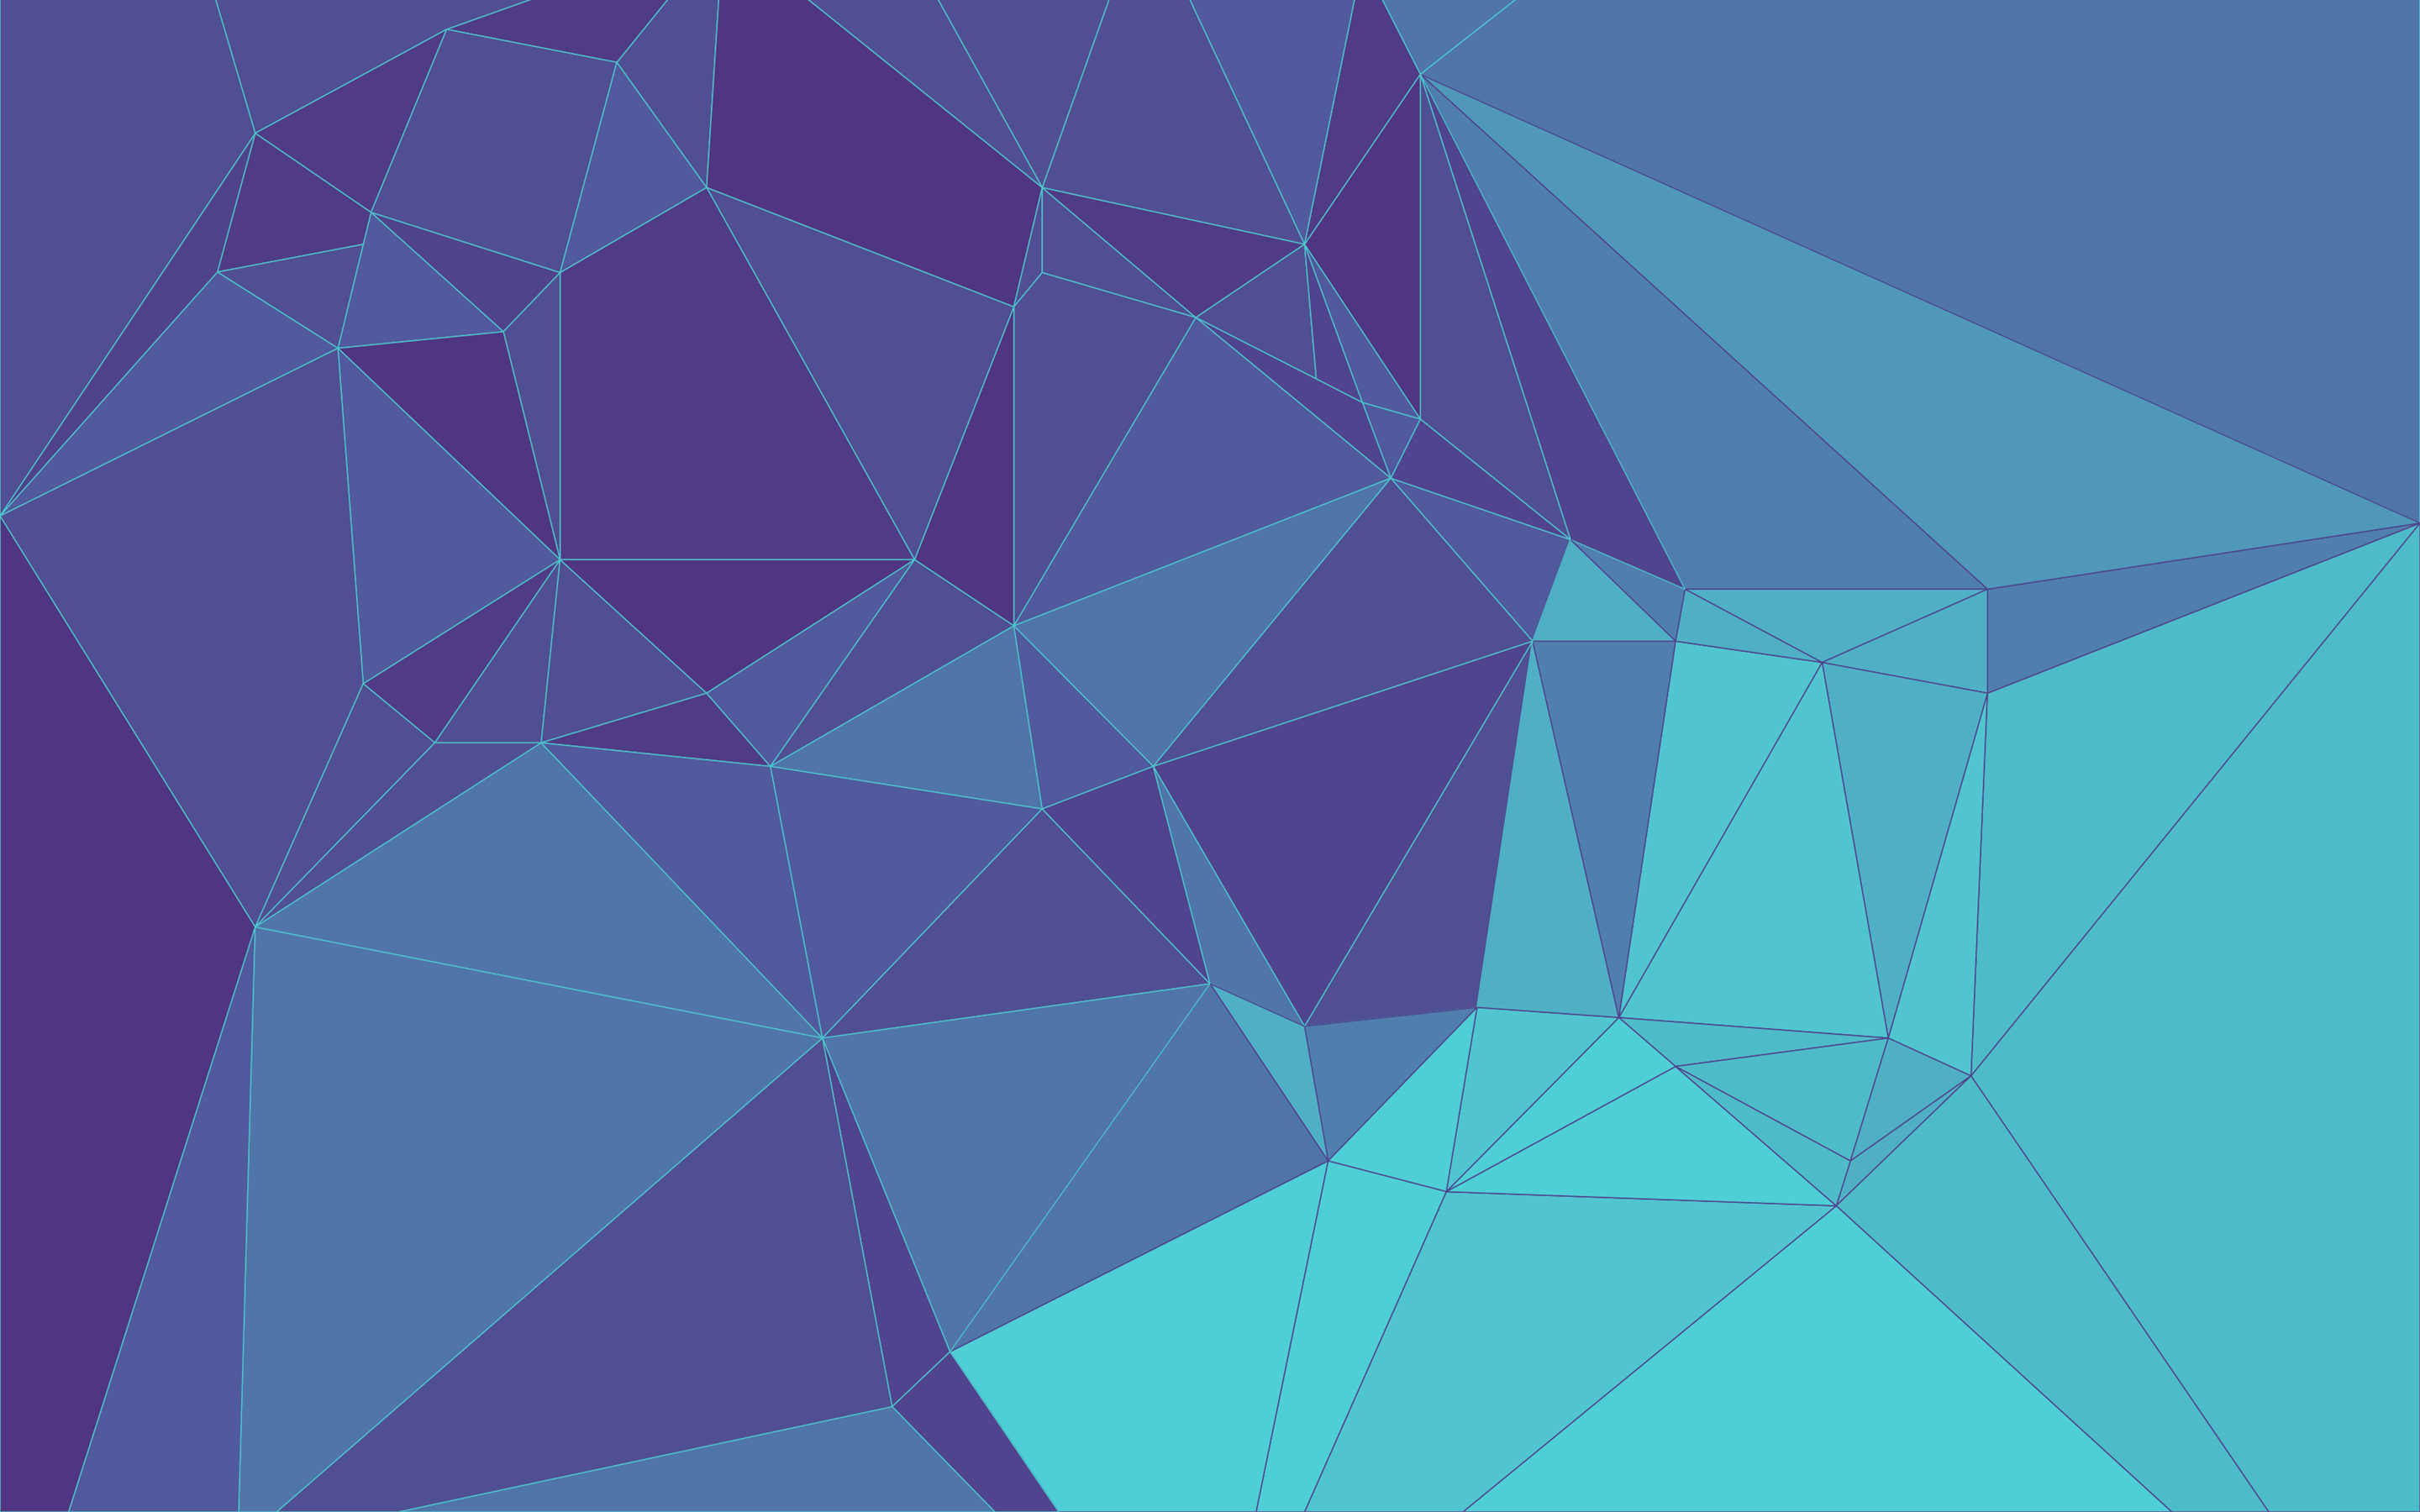 blue geometric wallpaper minimalistic - photo #12